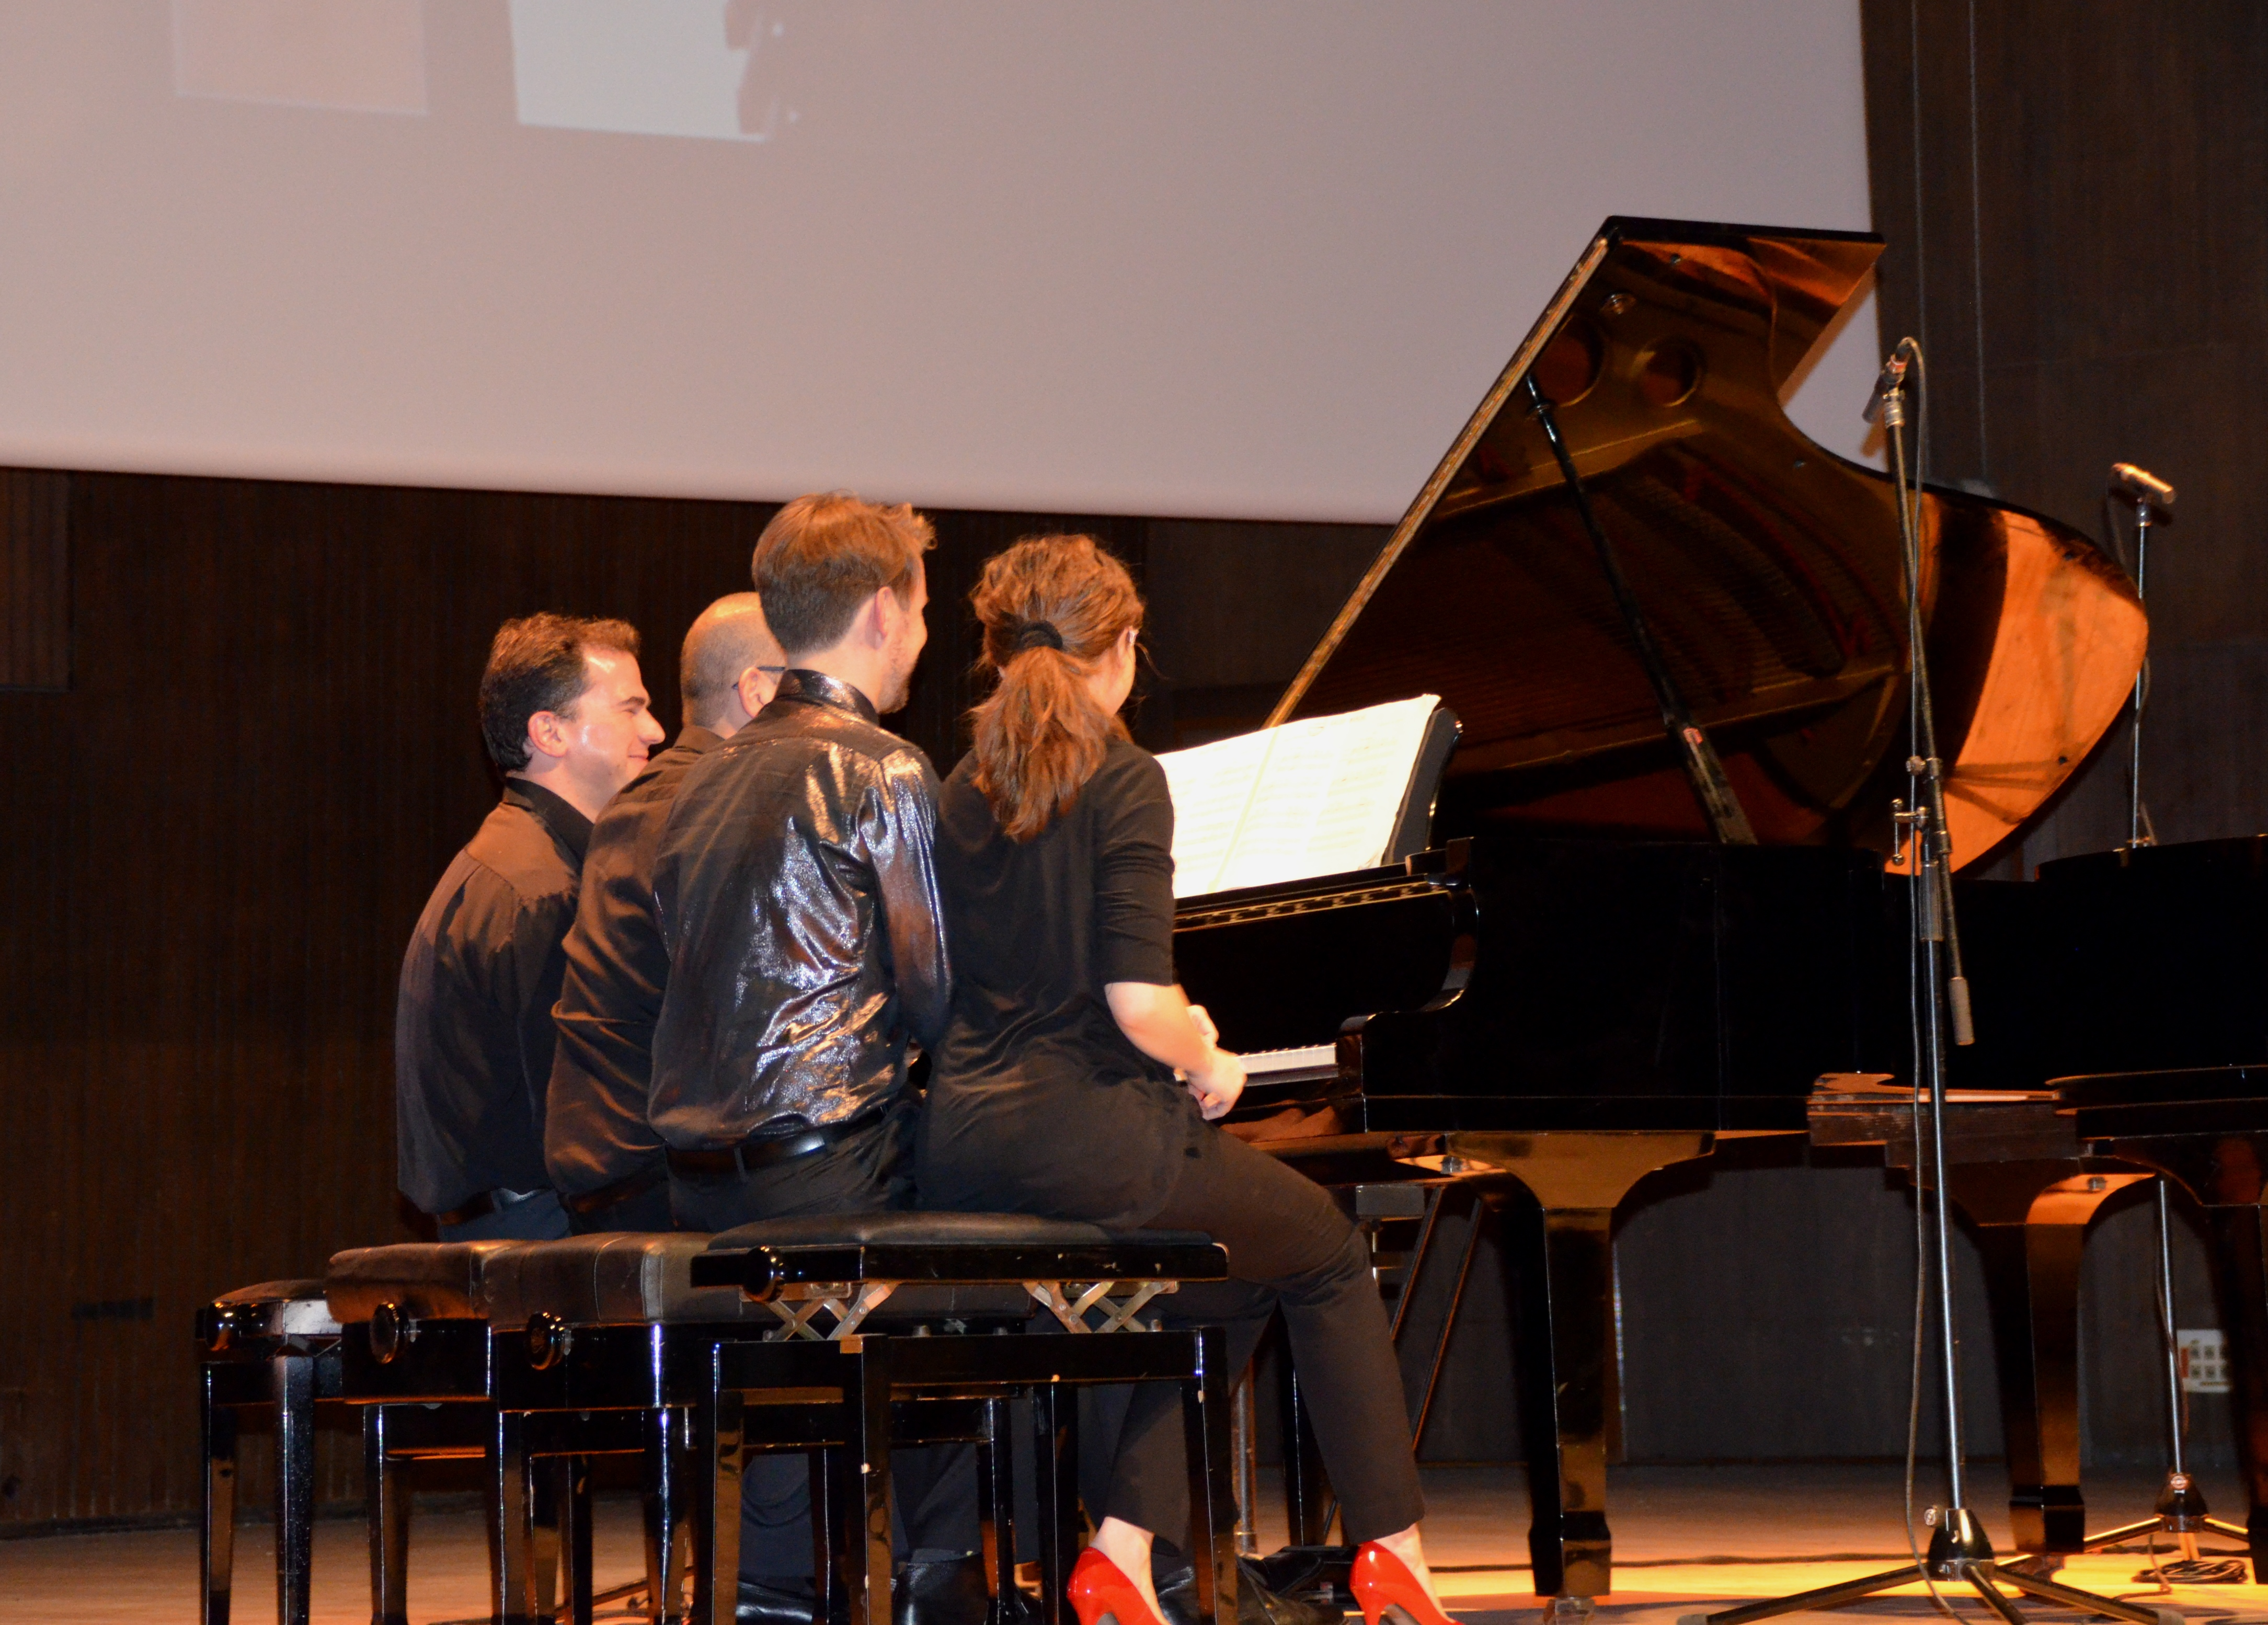 piano with four players